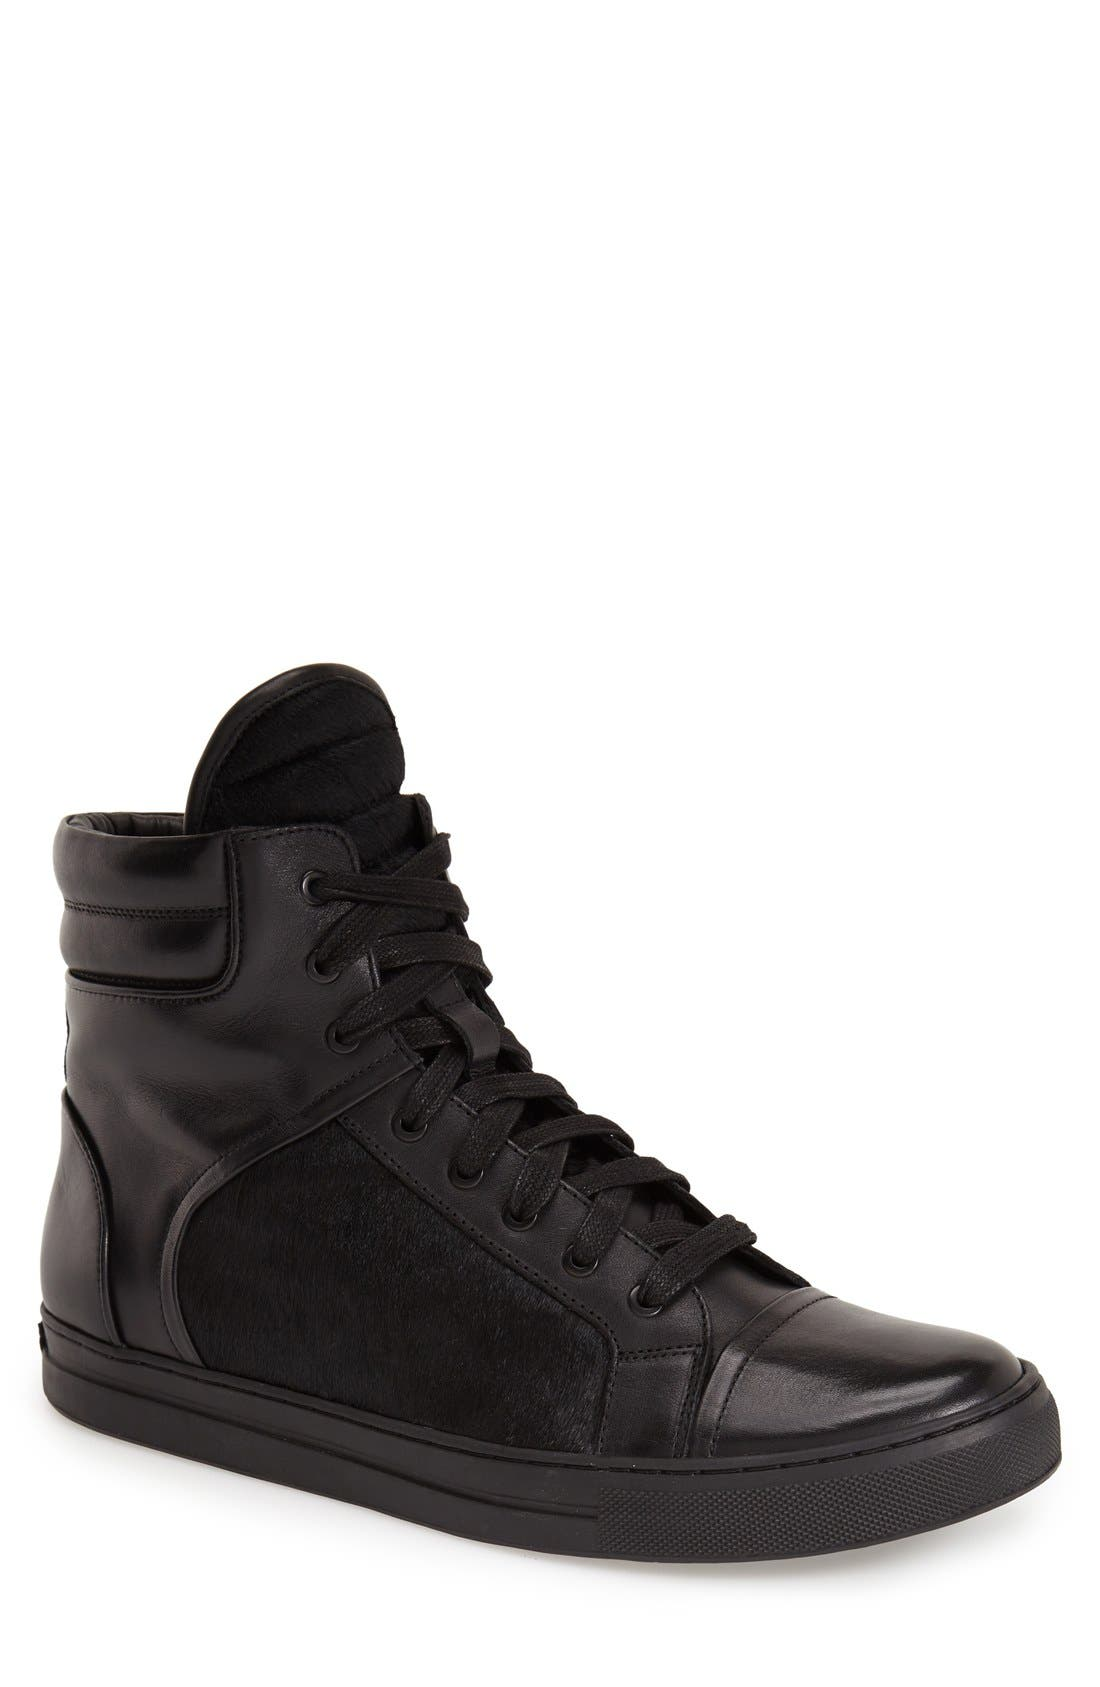 Alternate Image 1 Selected - Kenneth Cole New York 'Double Over' Zip High Top Sneaker (Men)